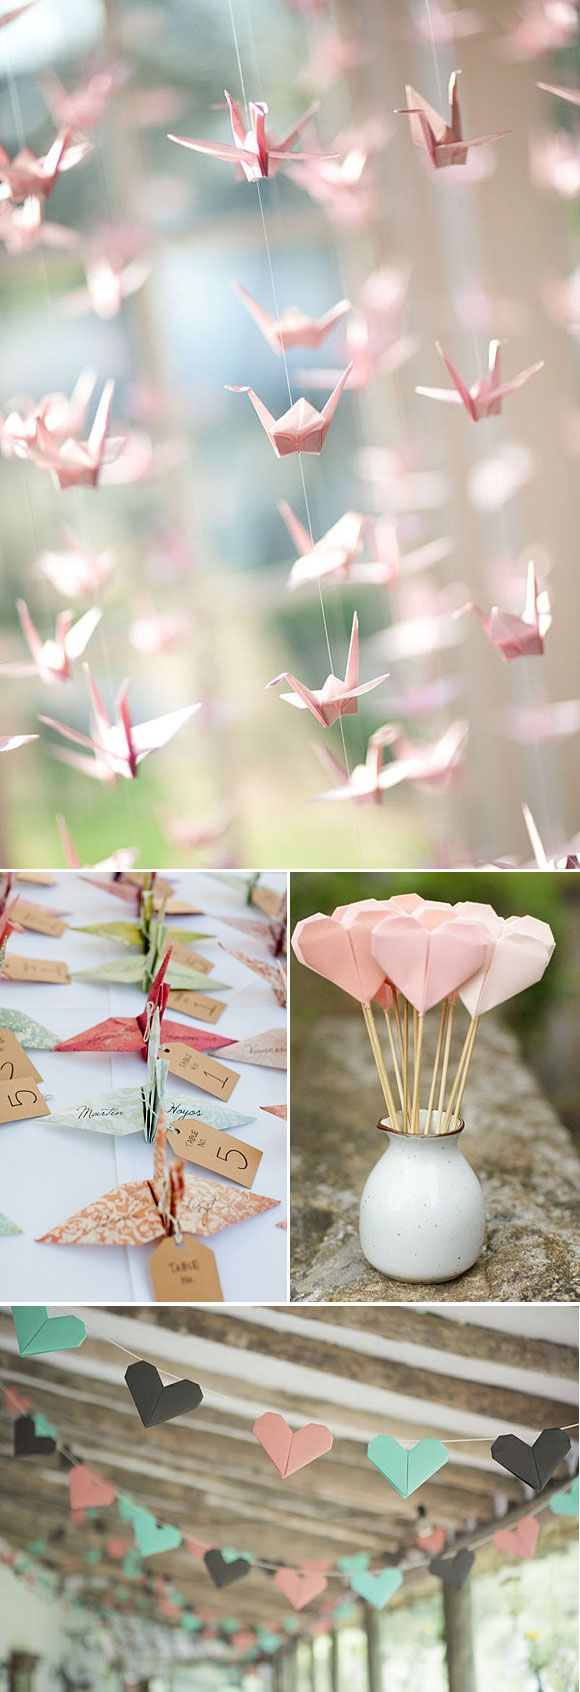 Origami wedding craft DIY | party decor